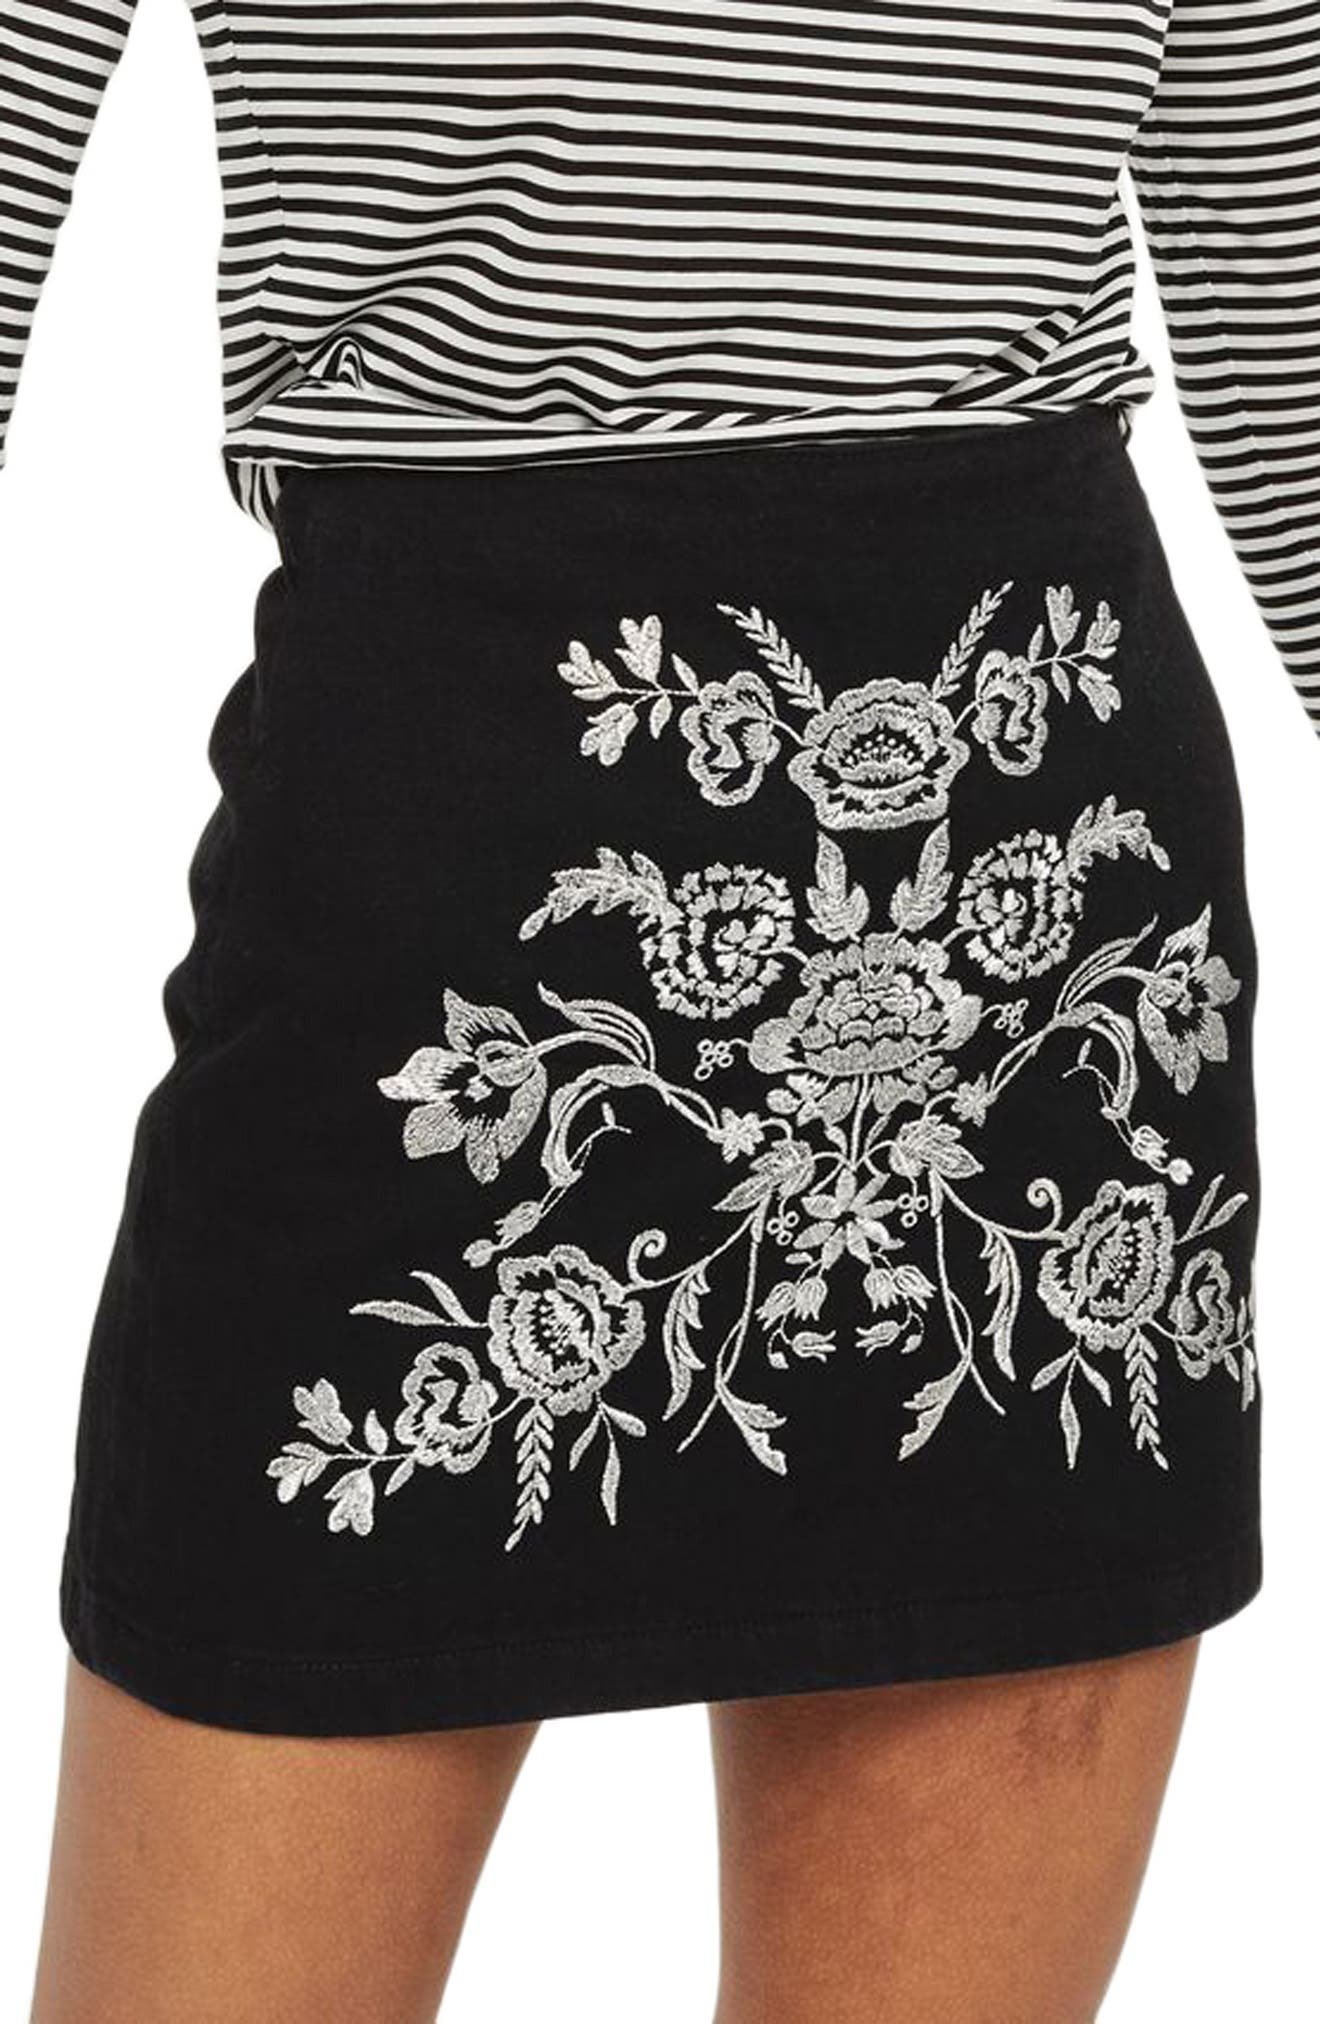 Floral Embroidered A-Line Skirt,                             Main thumbnail 1, color,